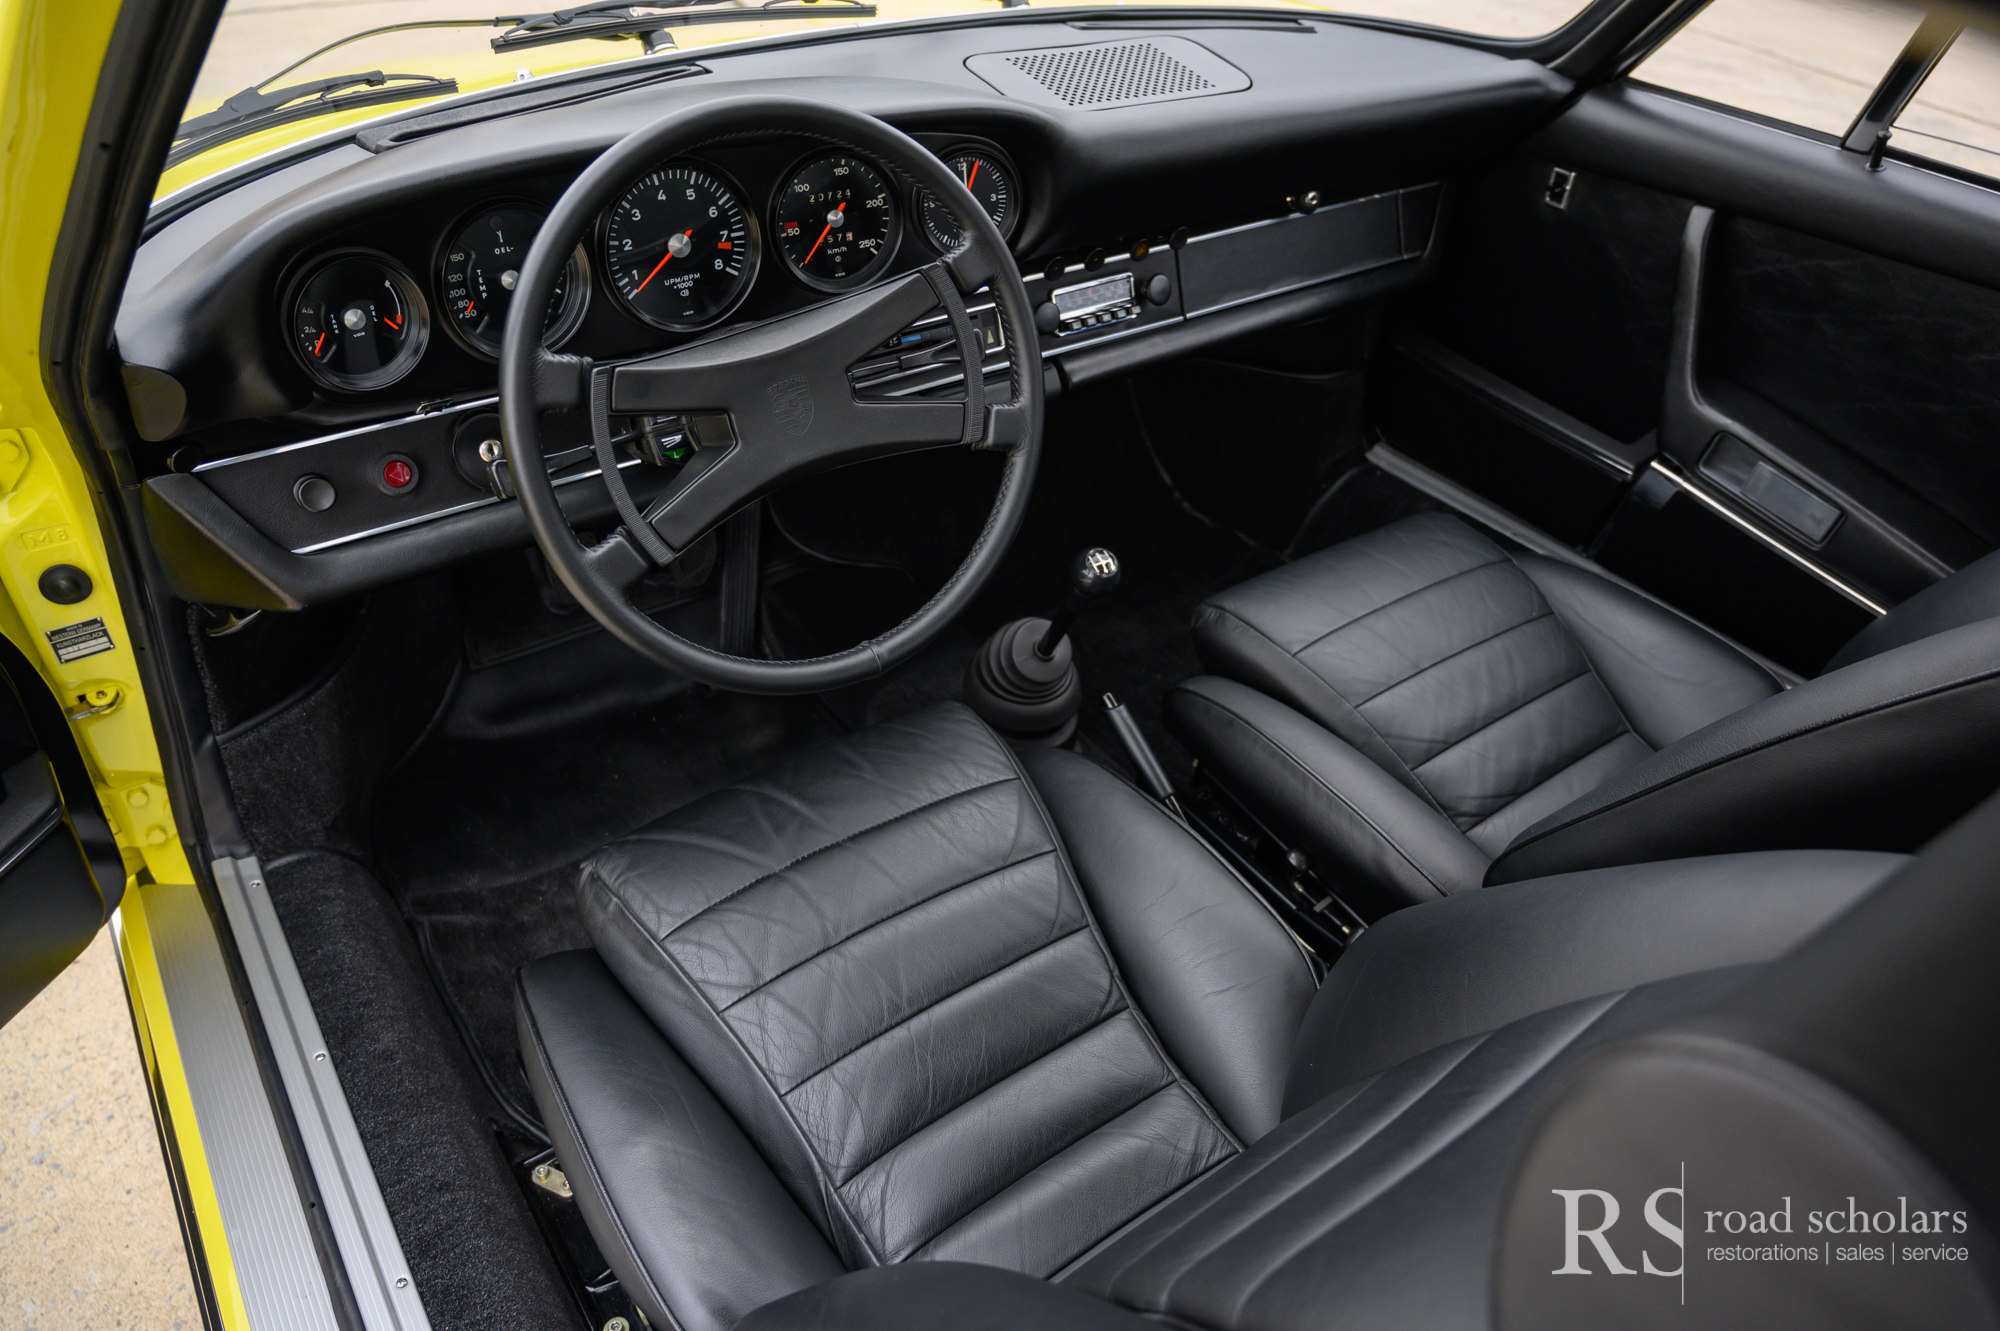 1973Porsche911RS-Chassis0101-47